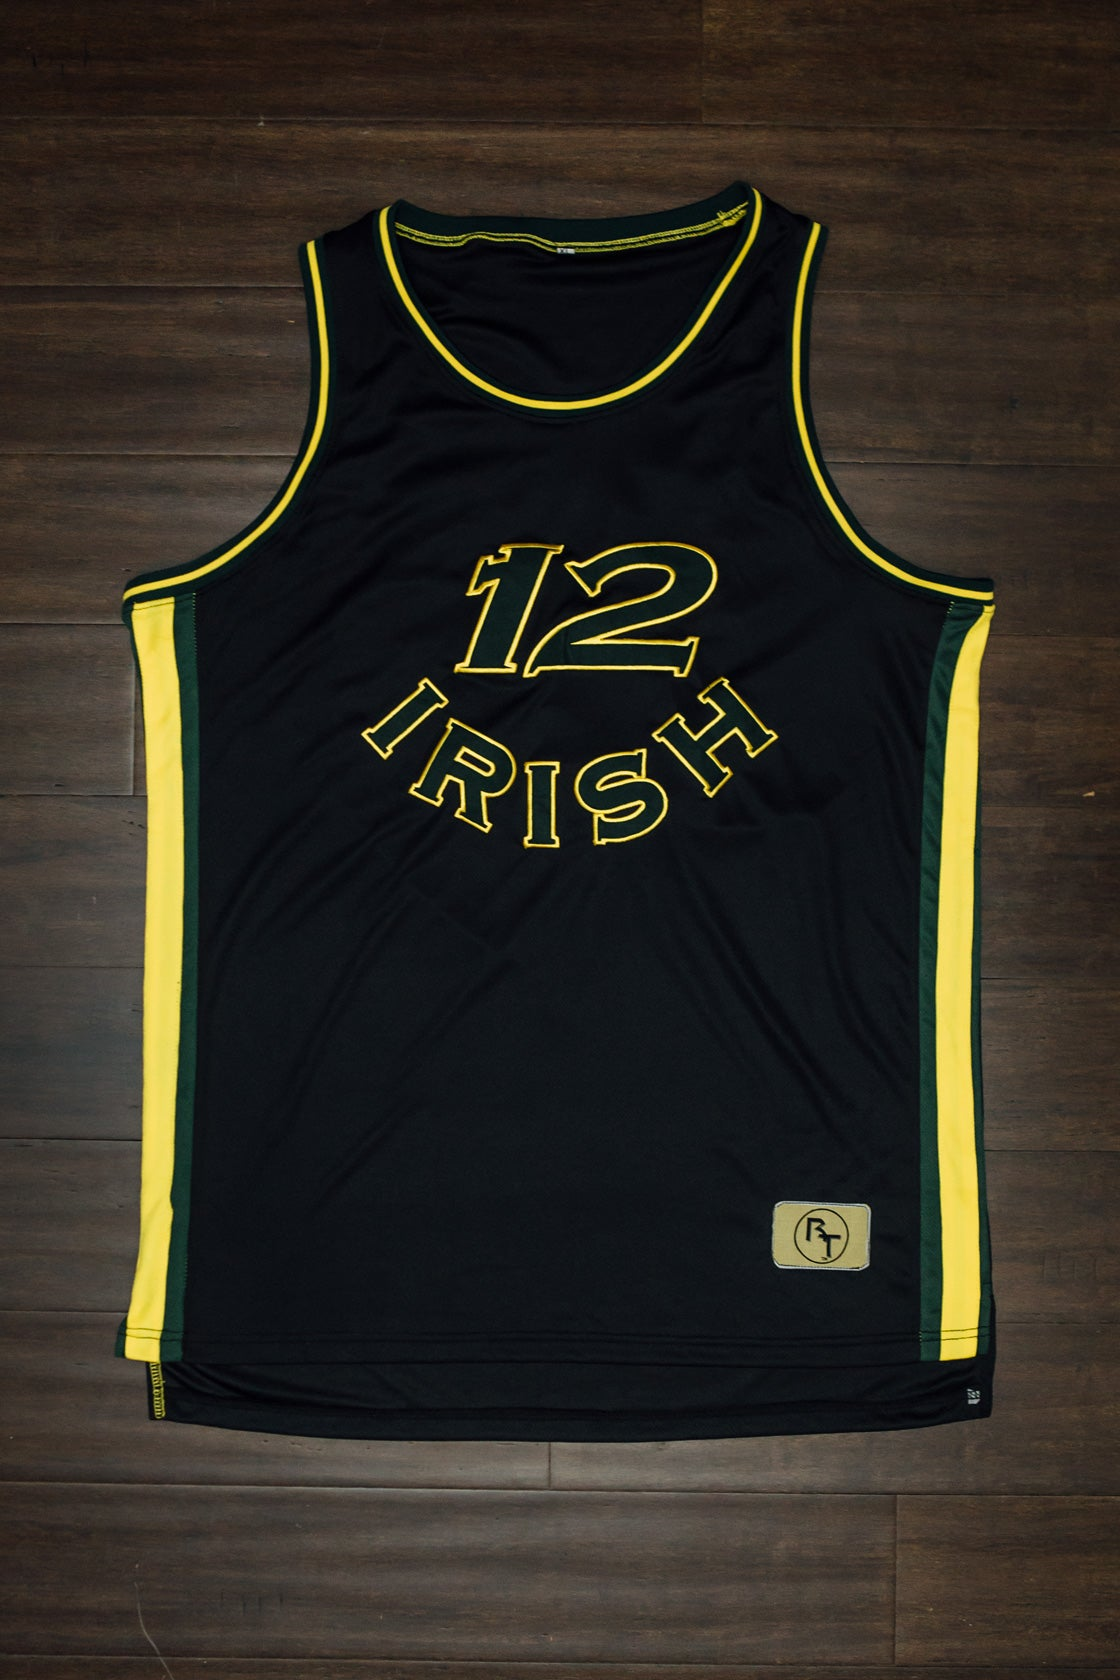 Image of Fab Five Irish jersey remastered!